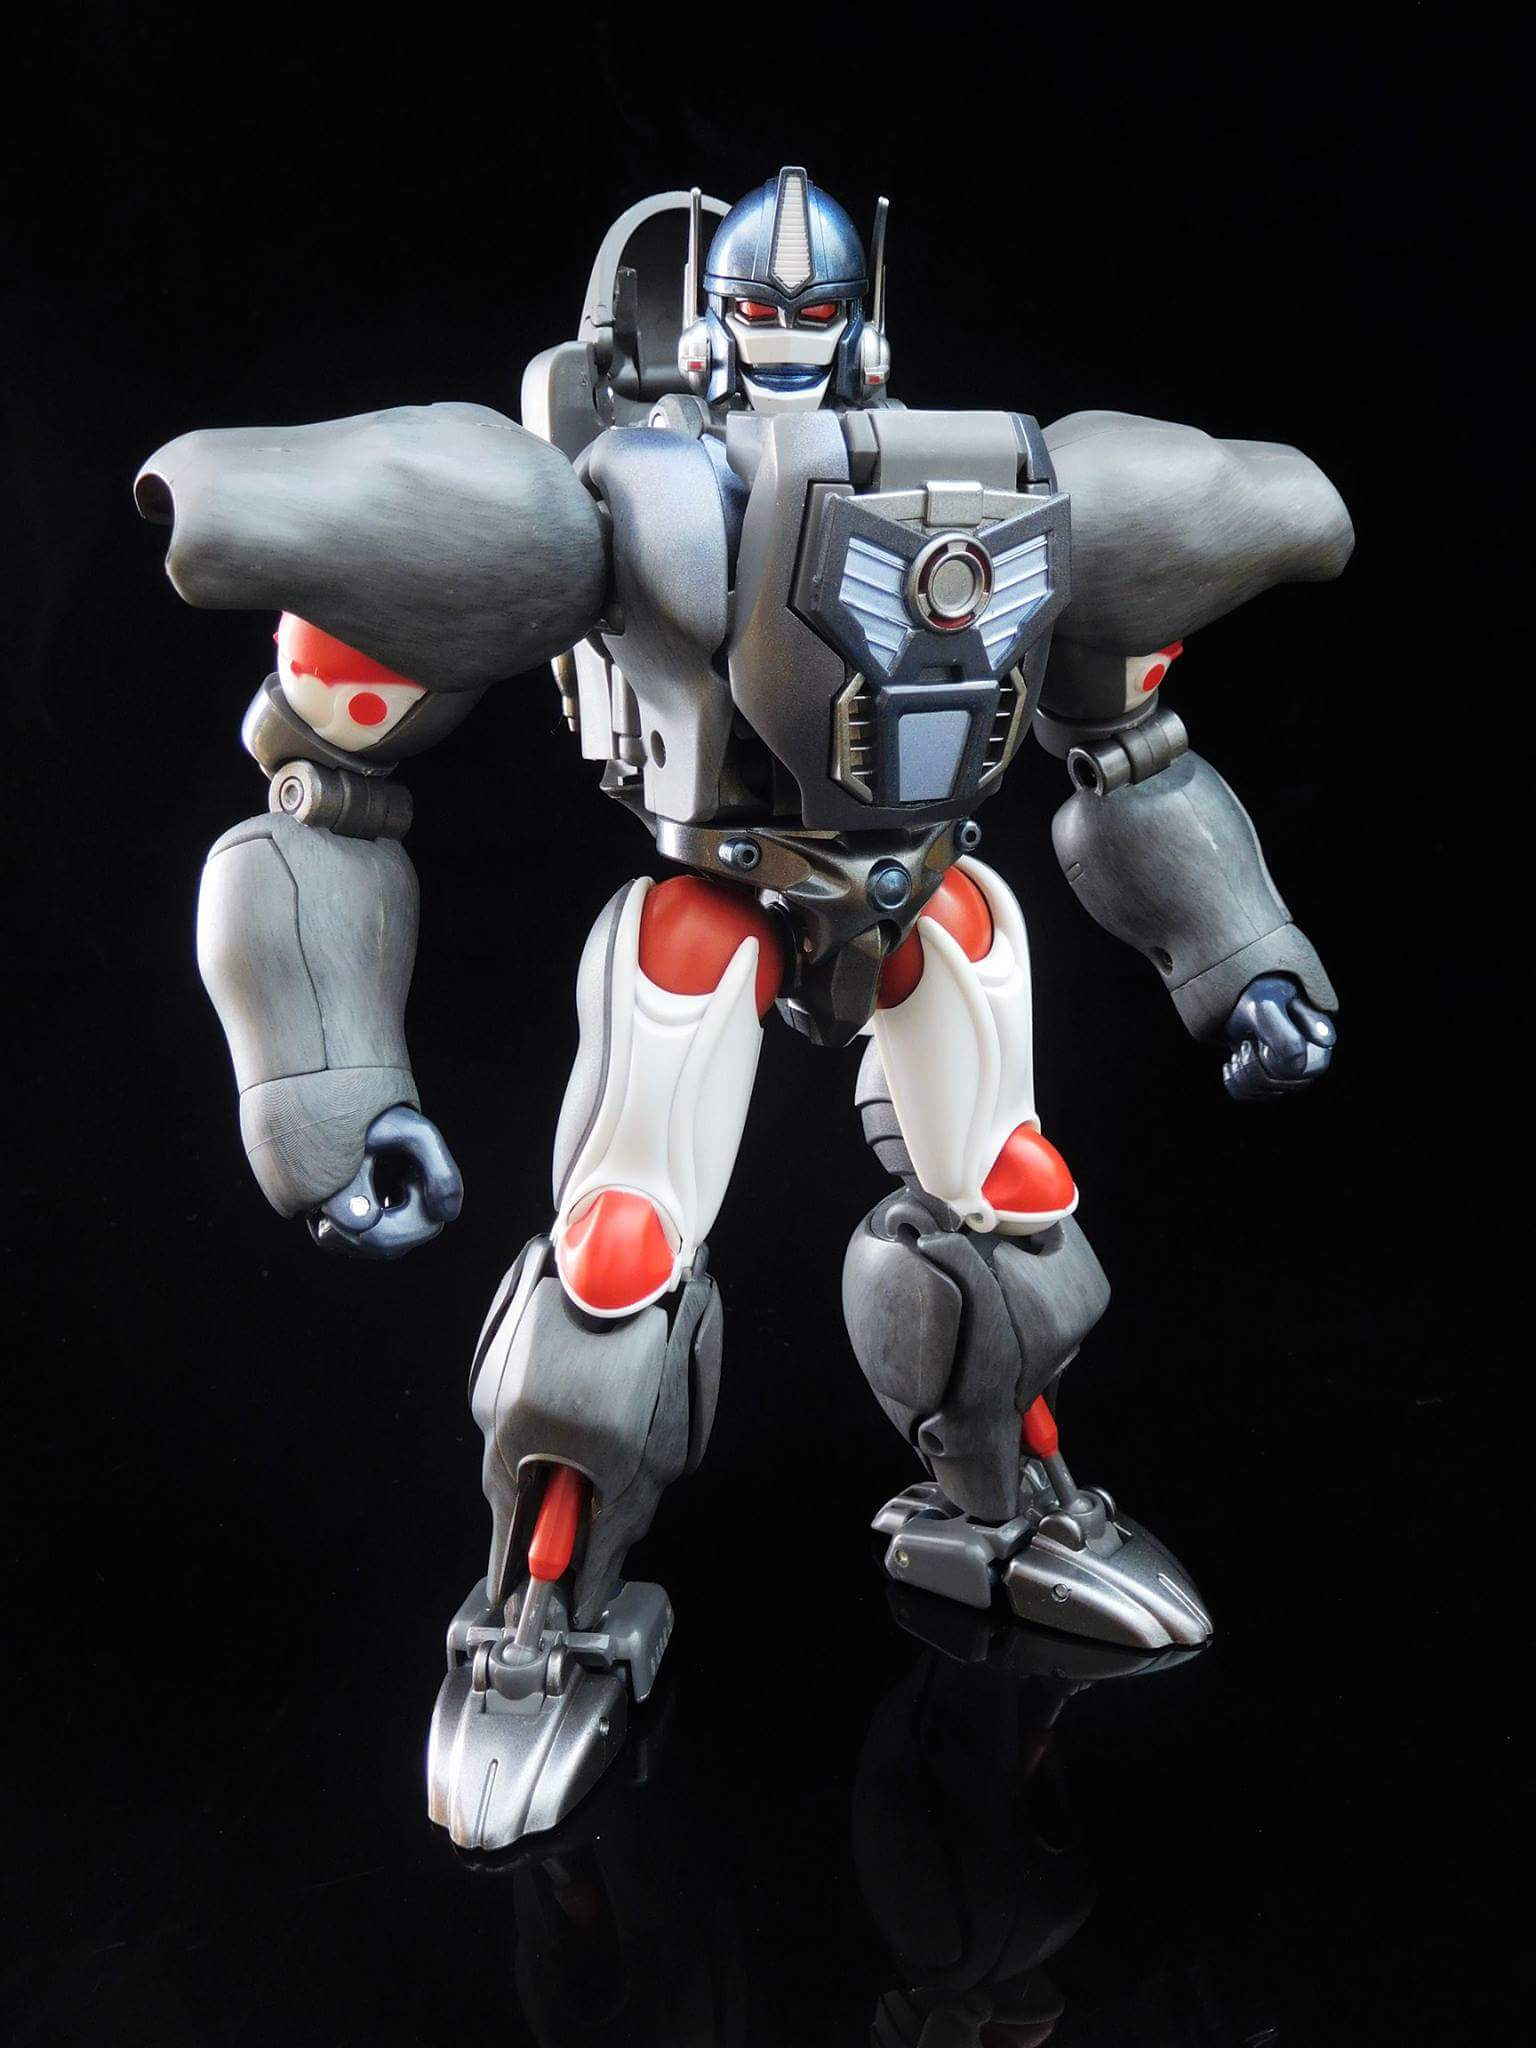 [Masterpiece] MP-32, MP-38 Optimus Primal et MP-38+ Burning Convoy (Beast Wars) - Page 3 0pW6aUKE